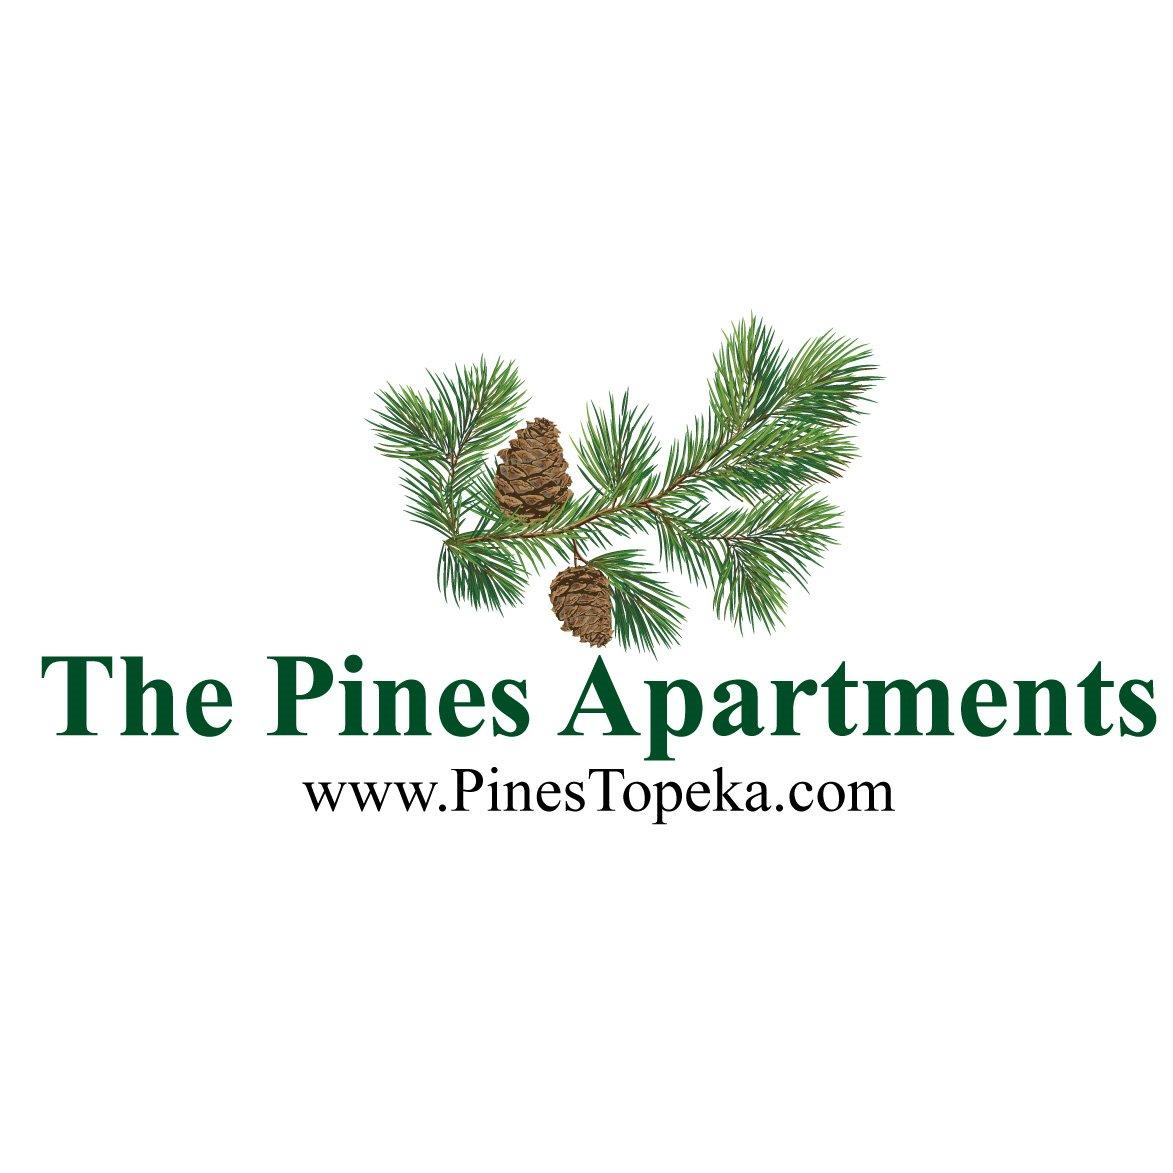 The Pines Apartments image 5